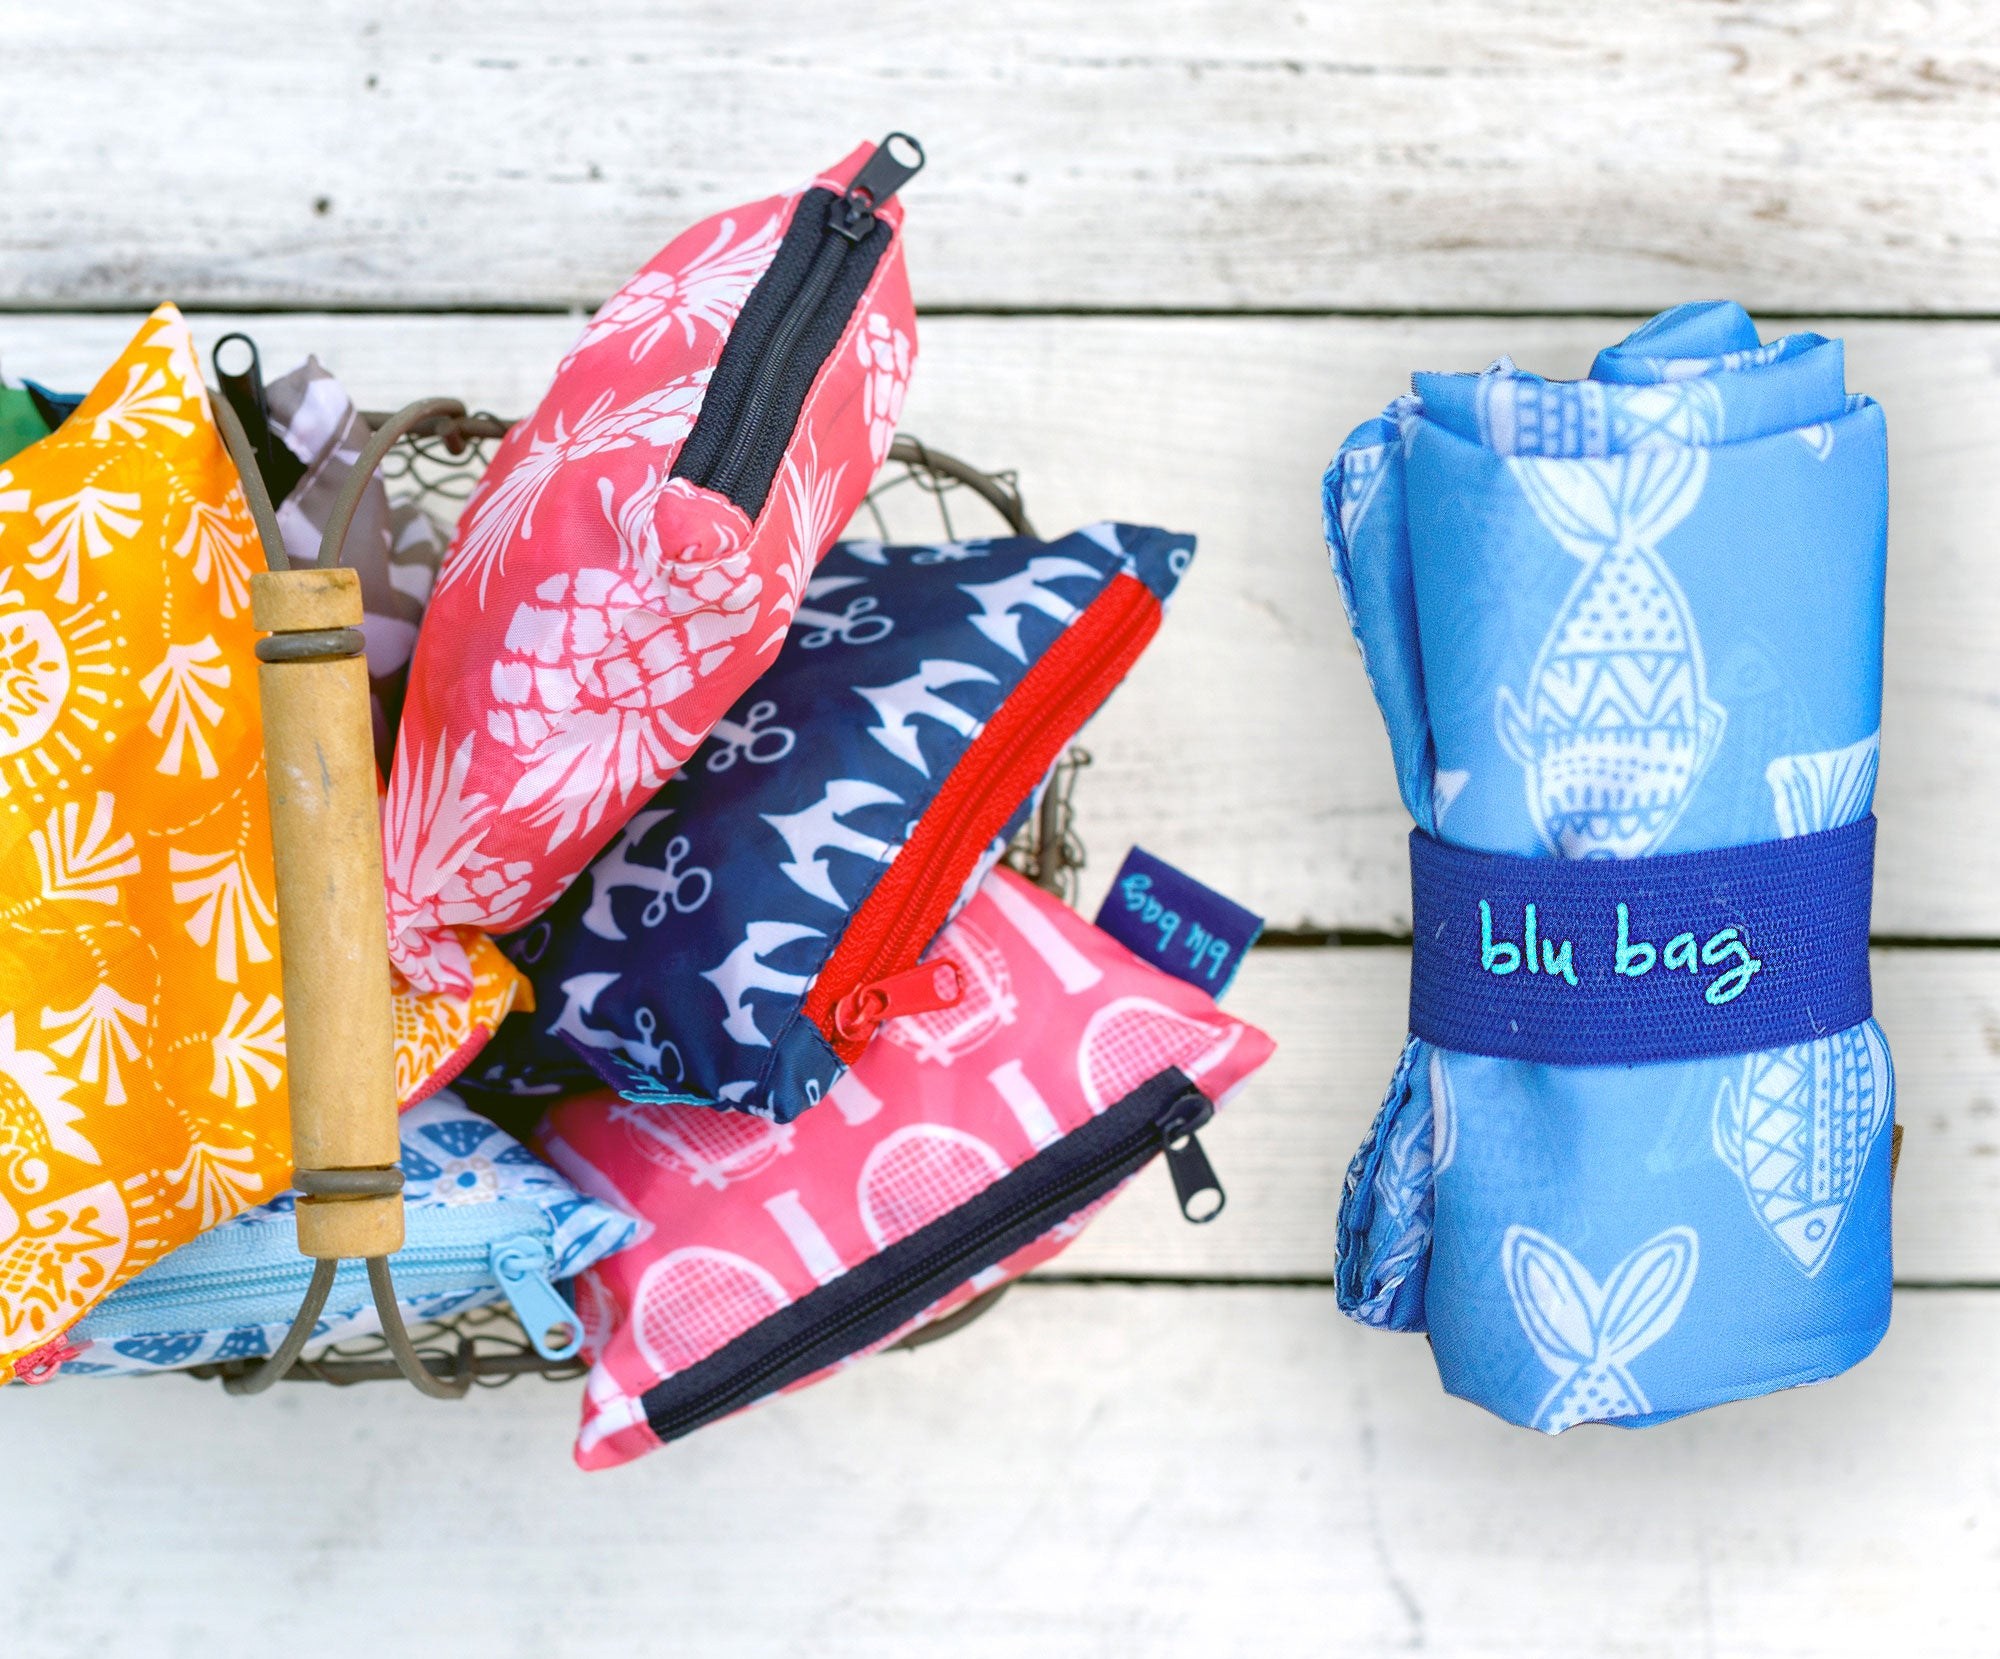 reusable blu bags in zipper pouches and rolled up with an elastic band